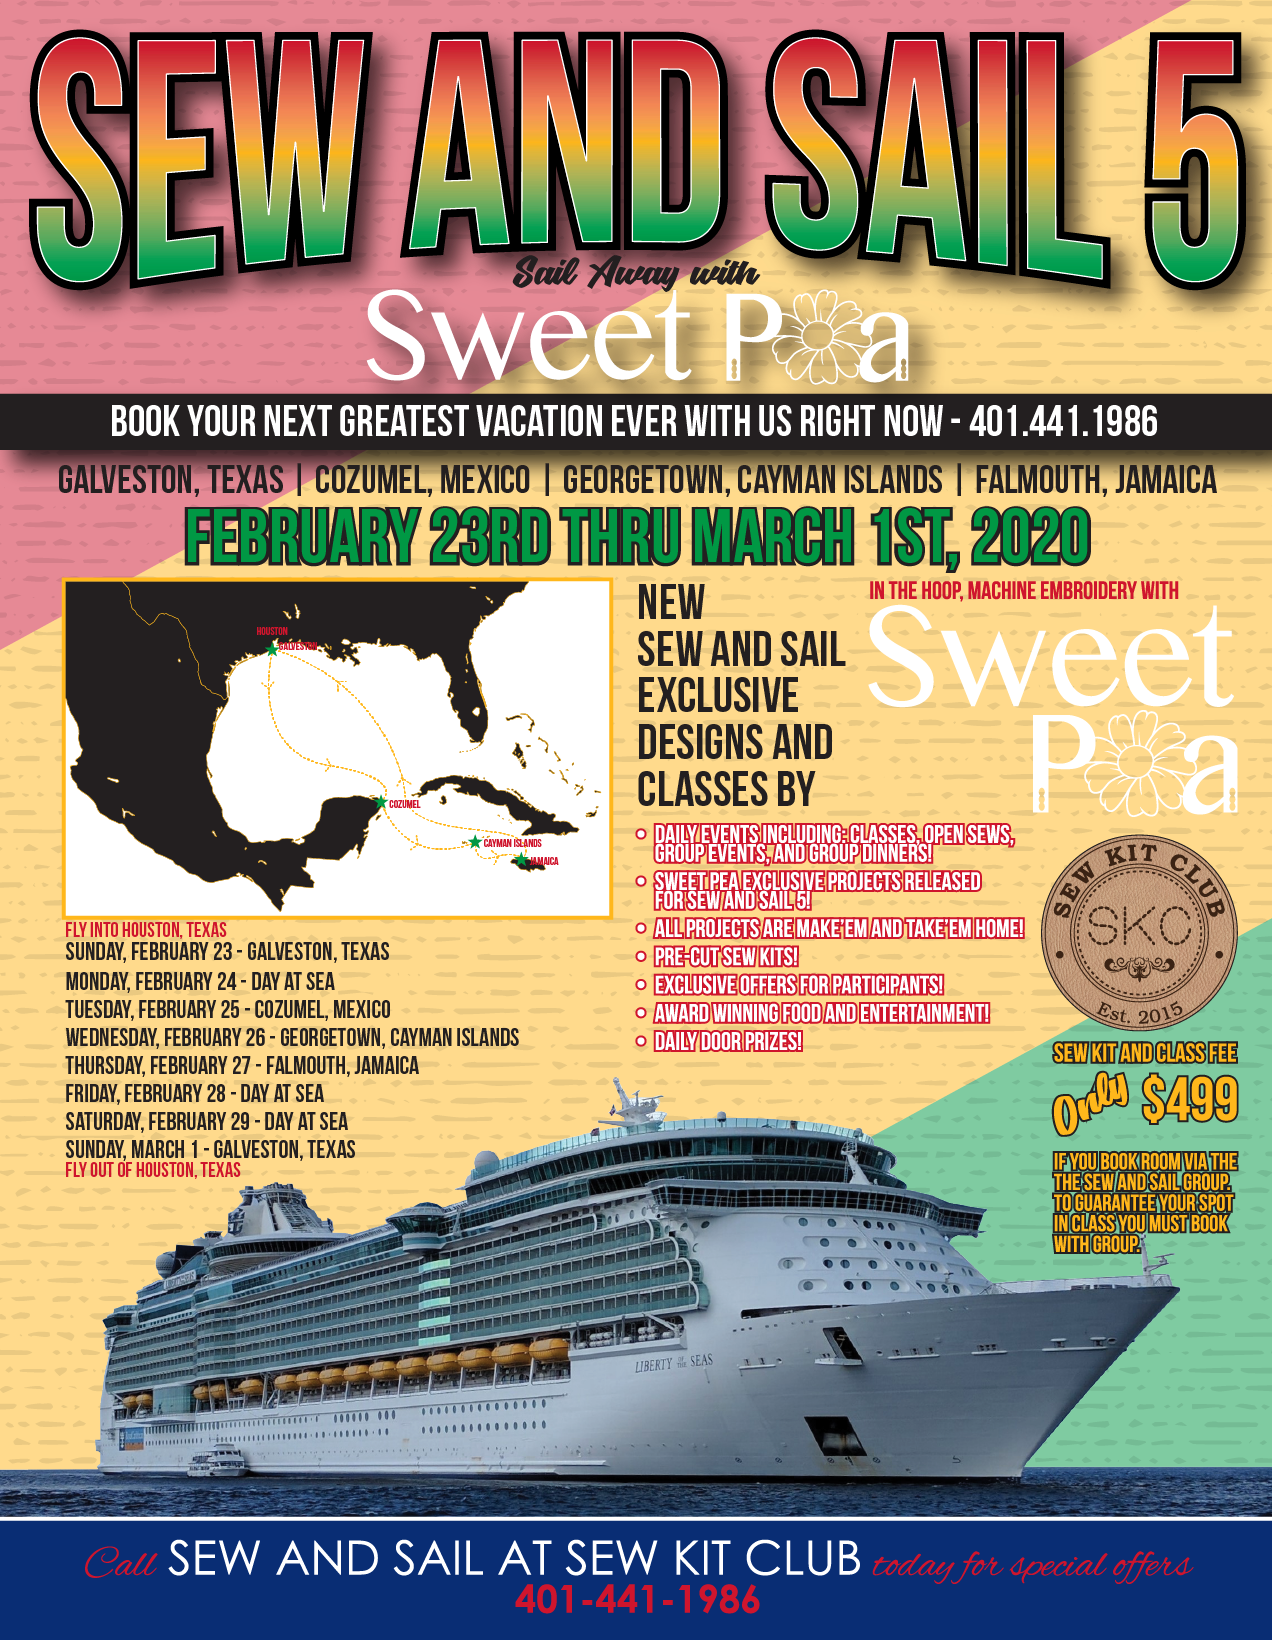 sew and sail 5 flyer (1)